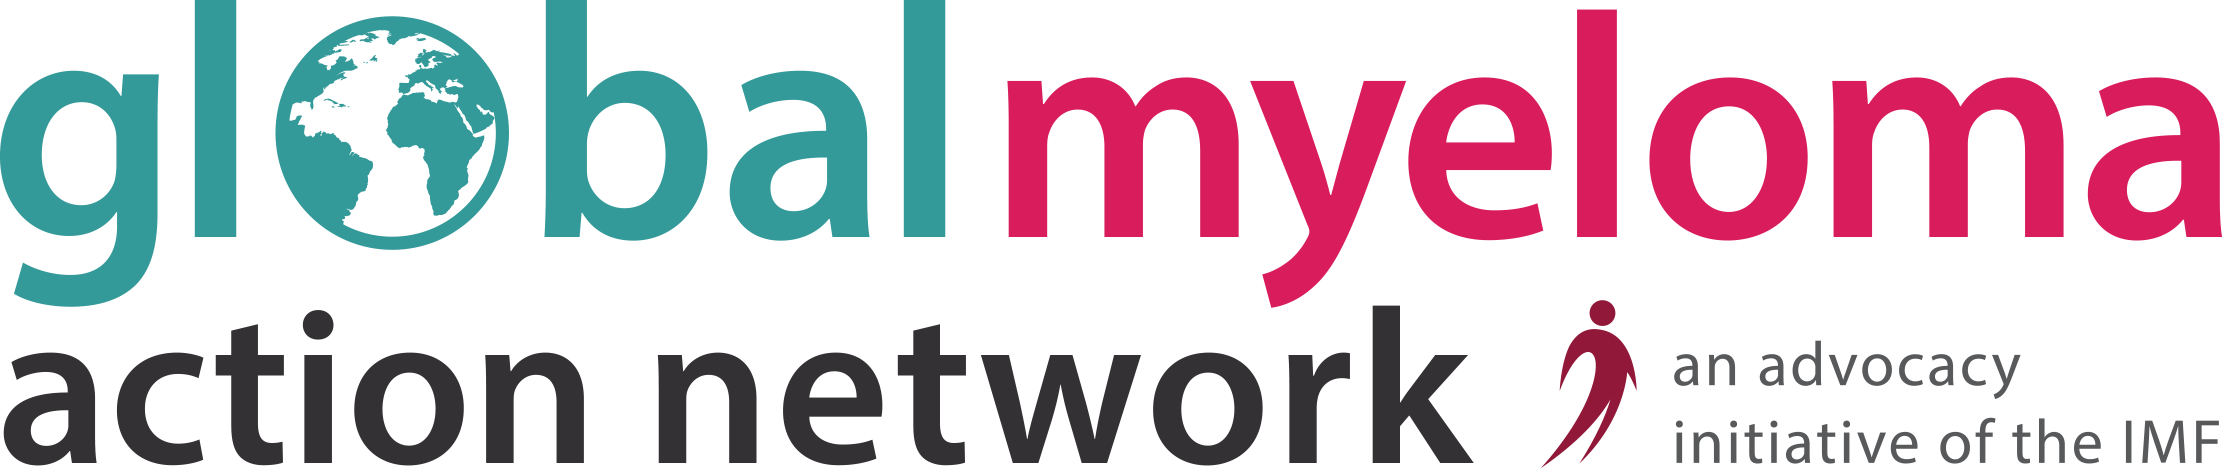 Global Myeloma Action Network (an advocacy initiative of the IMF)